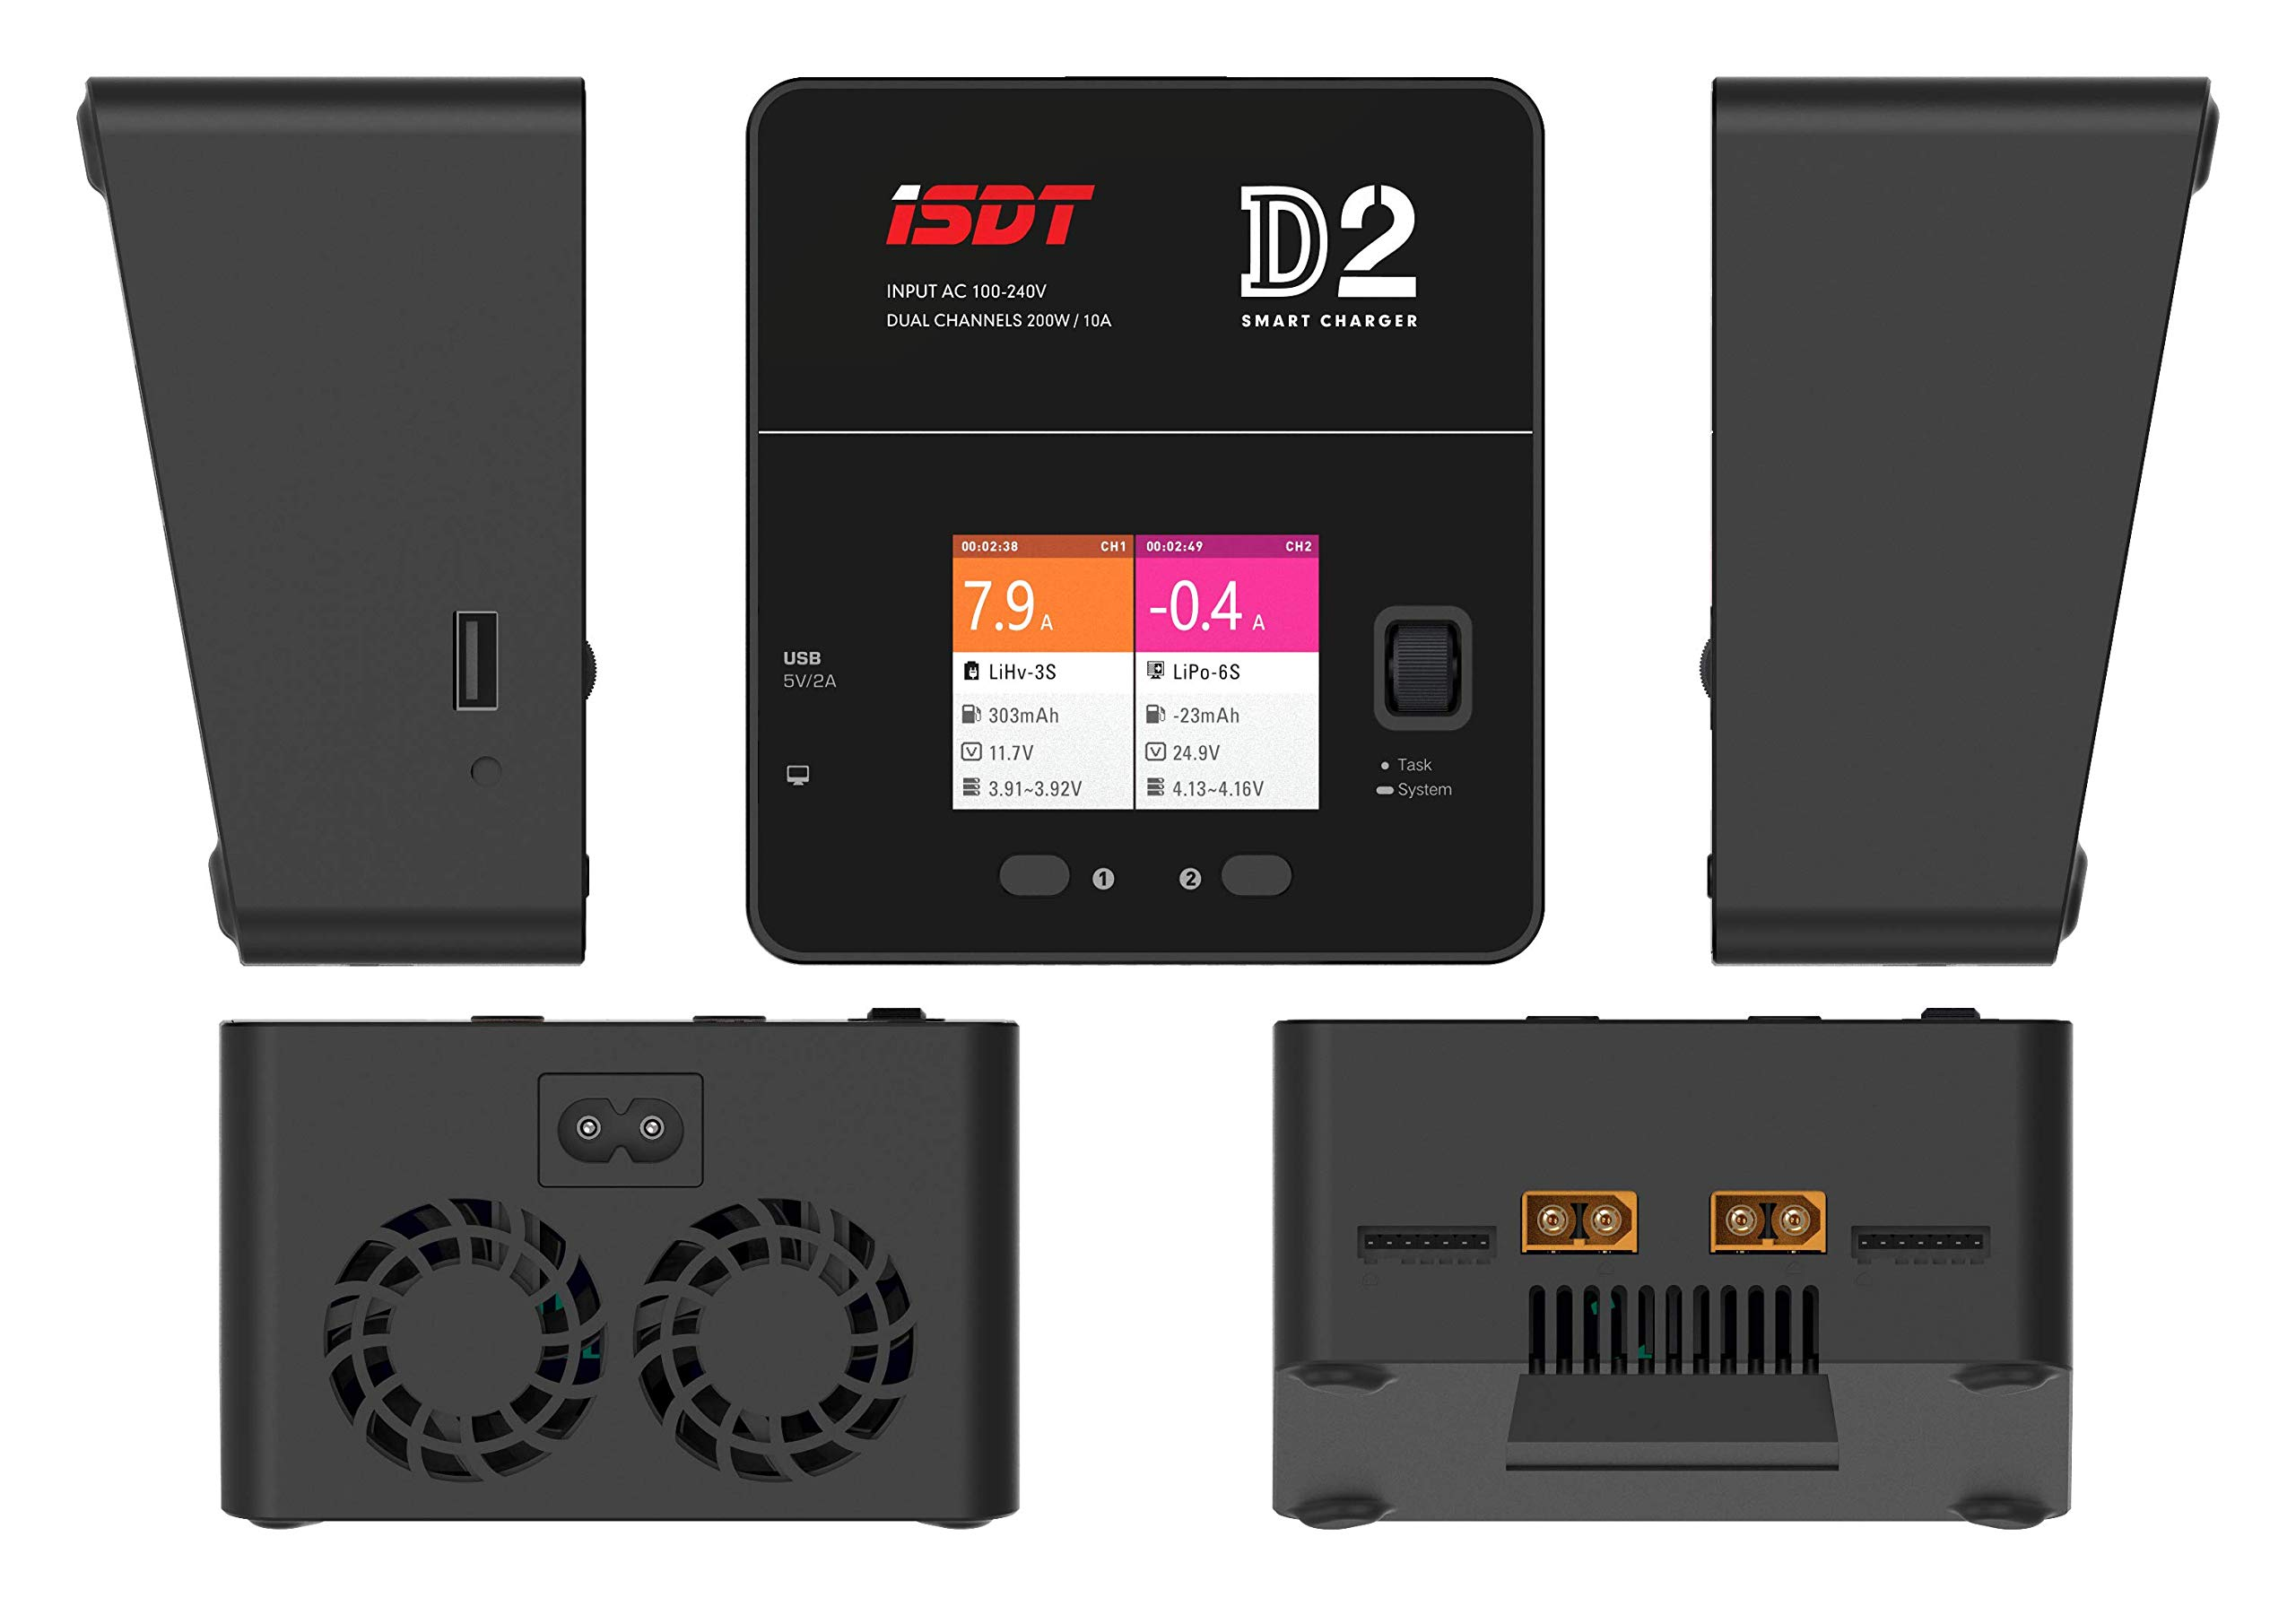 ISDT D2 LiPo Battery Balance Charger Duo Discharger Dual 200W 12A2 AC Dual Channel Output 1-6S Li-ion Life NiCd NiMH LiHV PB Smart Batterry by ISDT (Image #8)